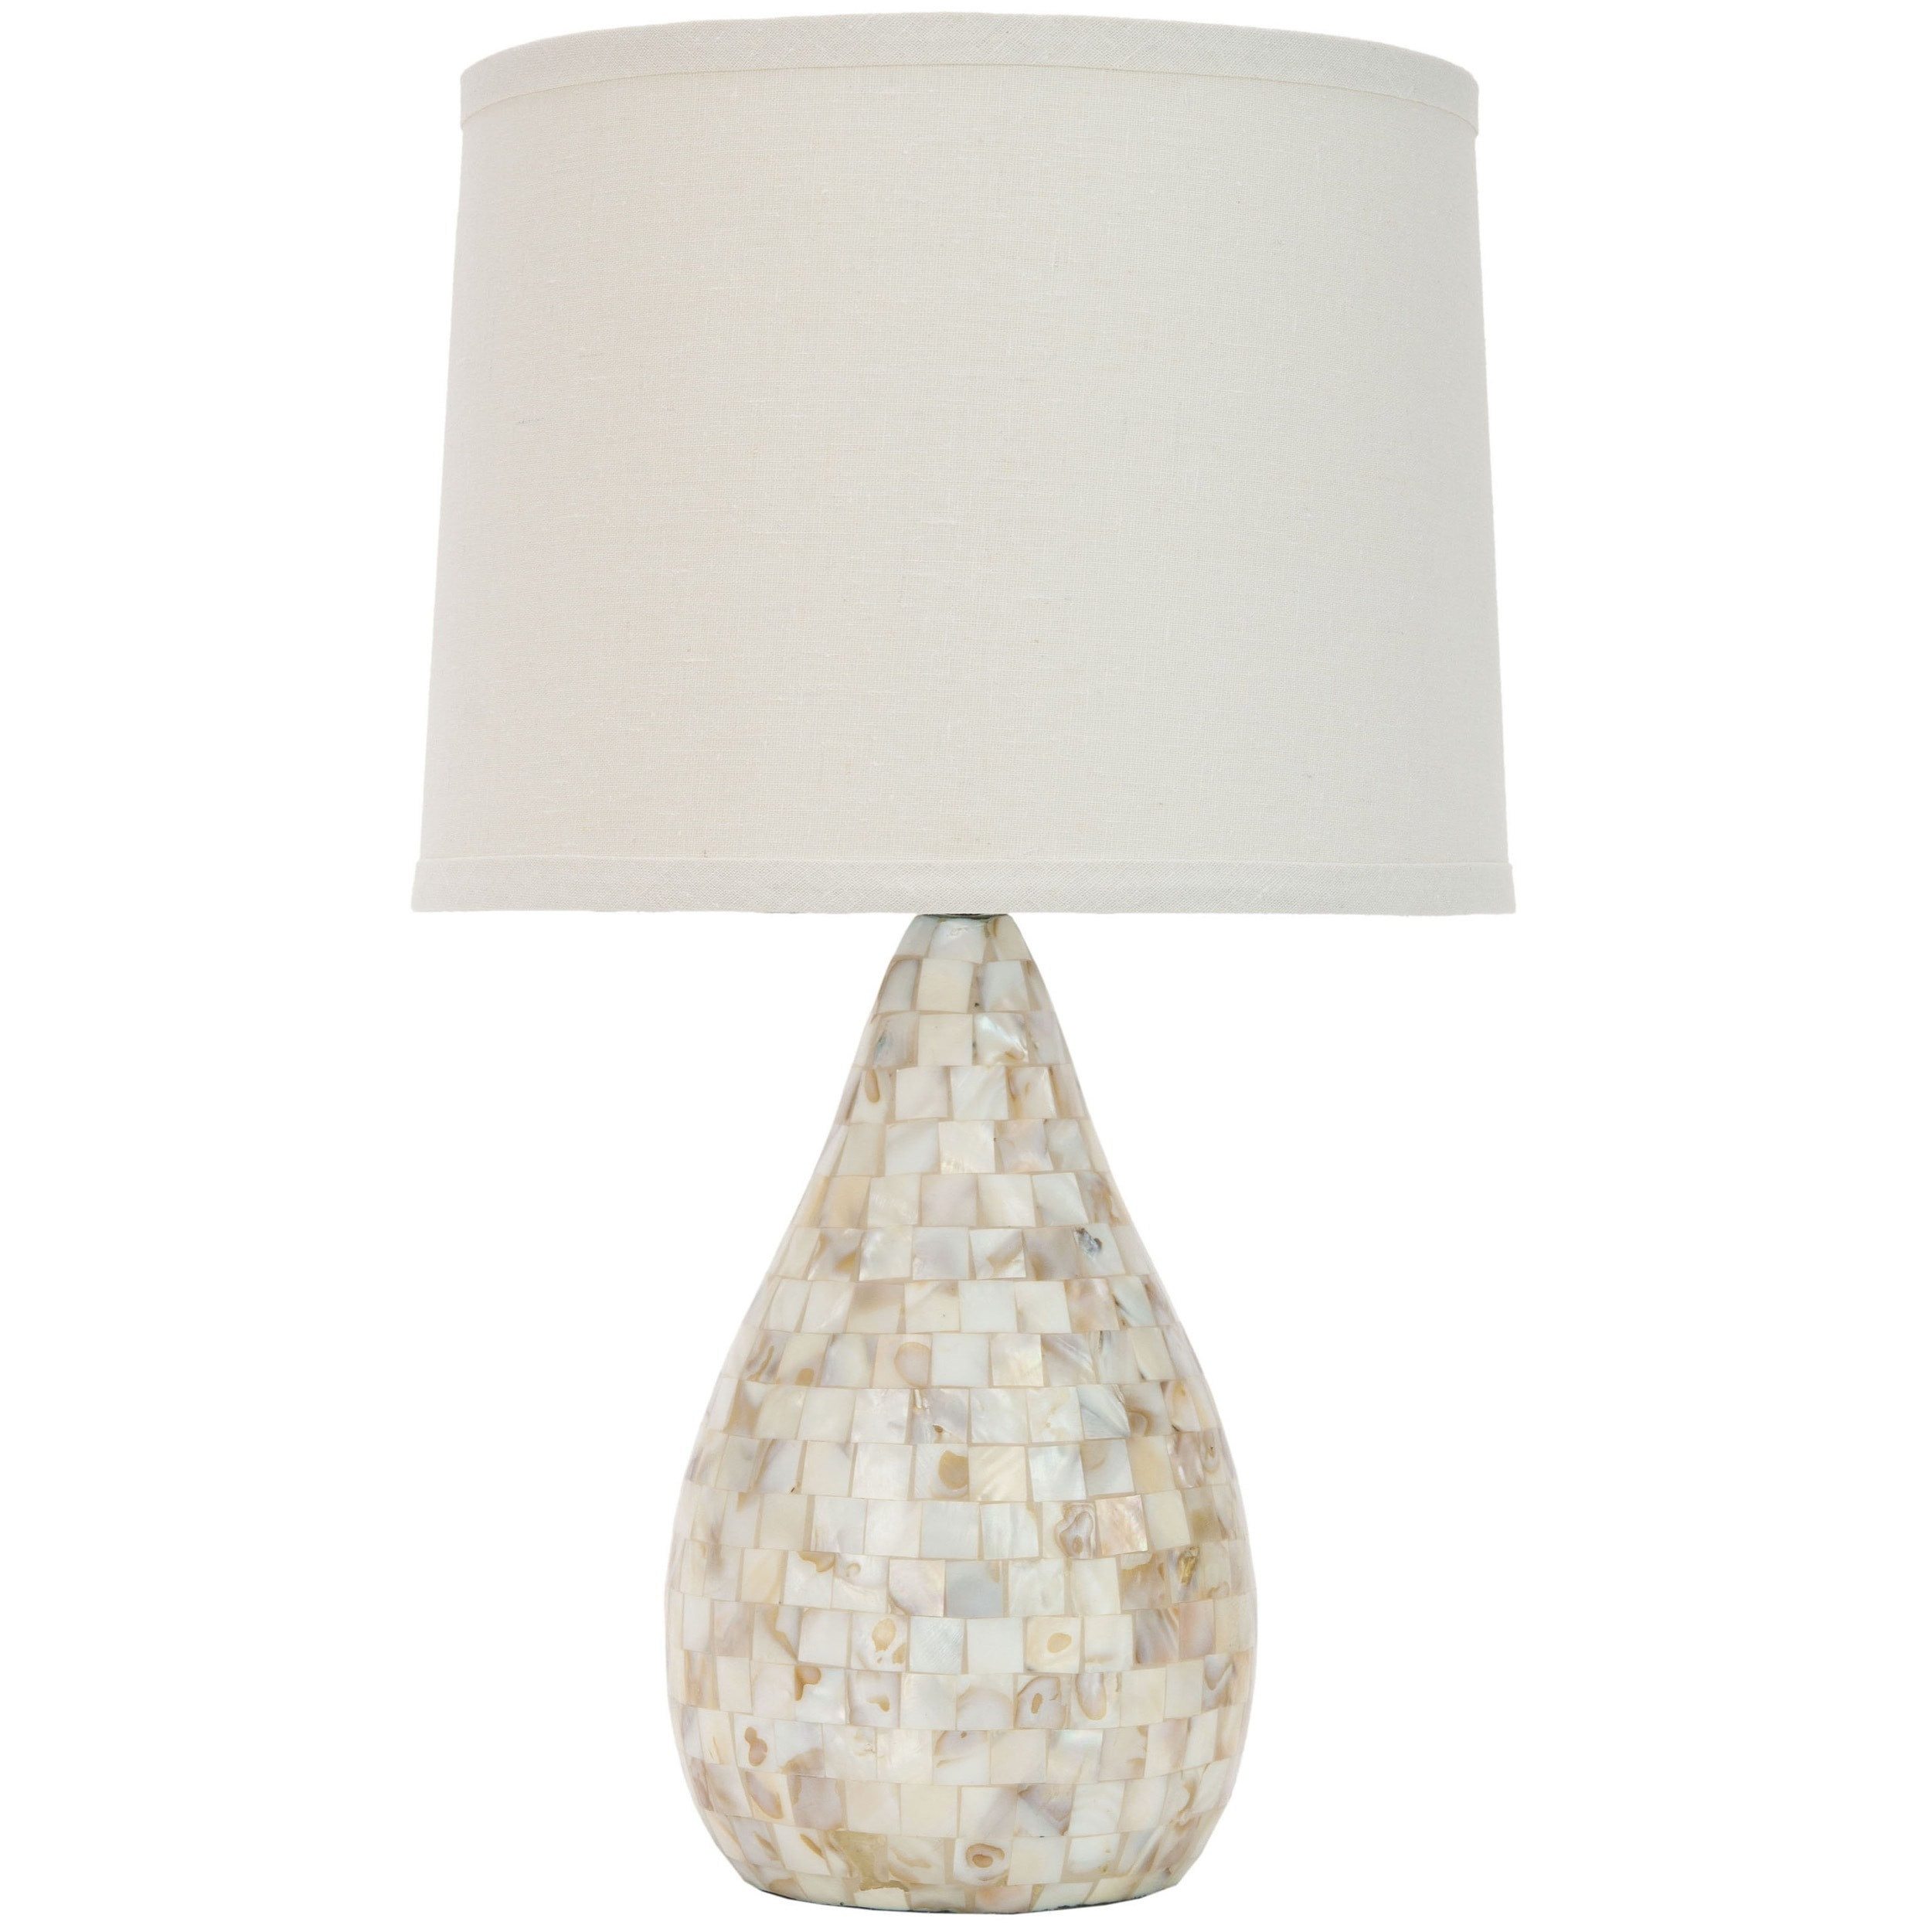 Safavieh lighting 205 inch mother of pearl table lamp set of 2 safavieh lighting 205 inch mother of pearl table lamp set of 2 free shipping today overstock 13792218 aloadofball Image collections